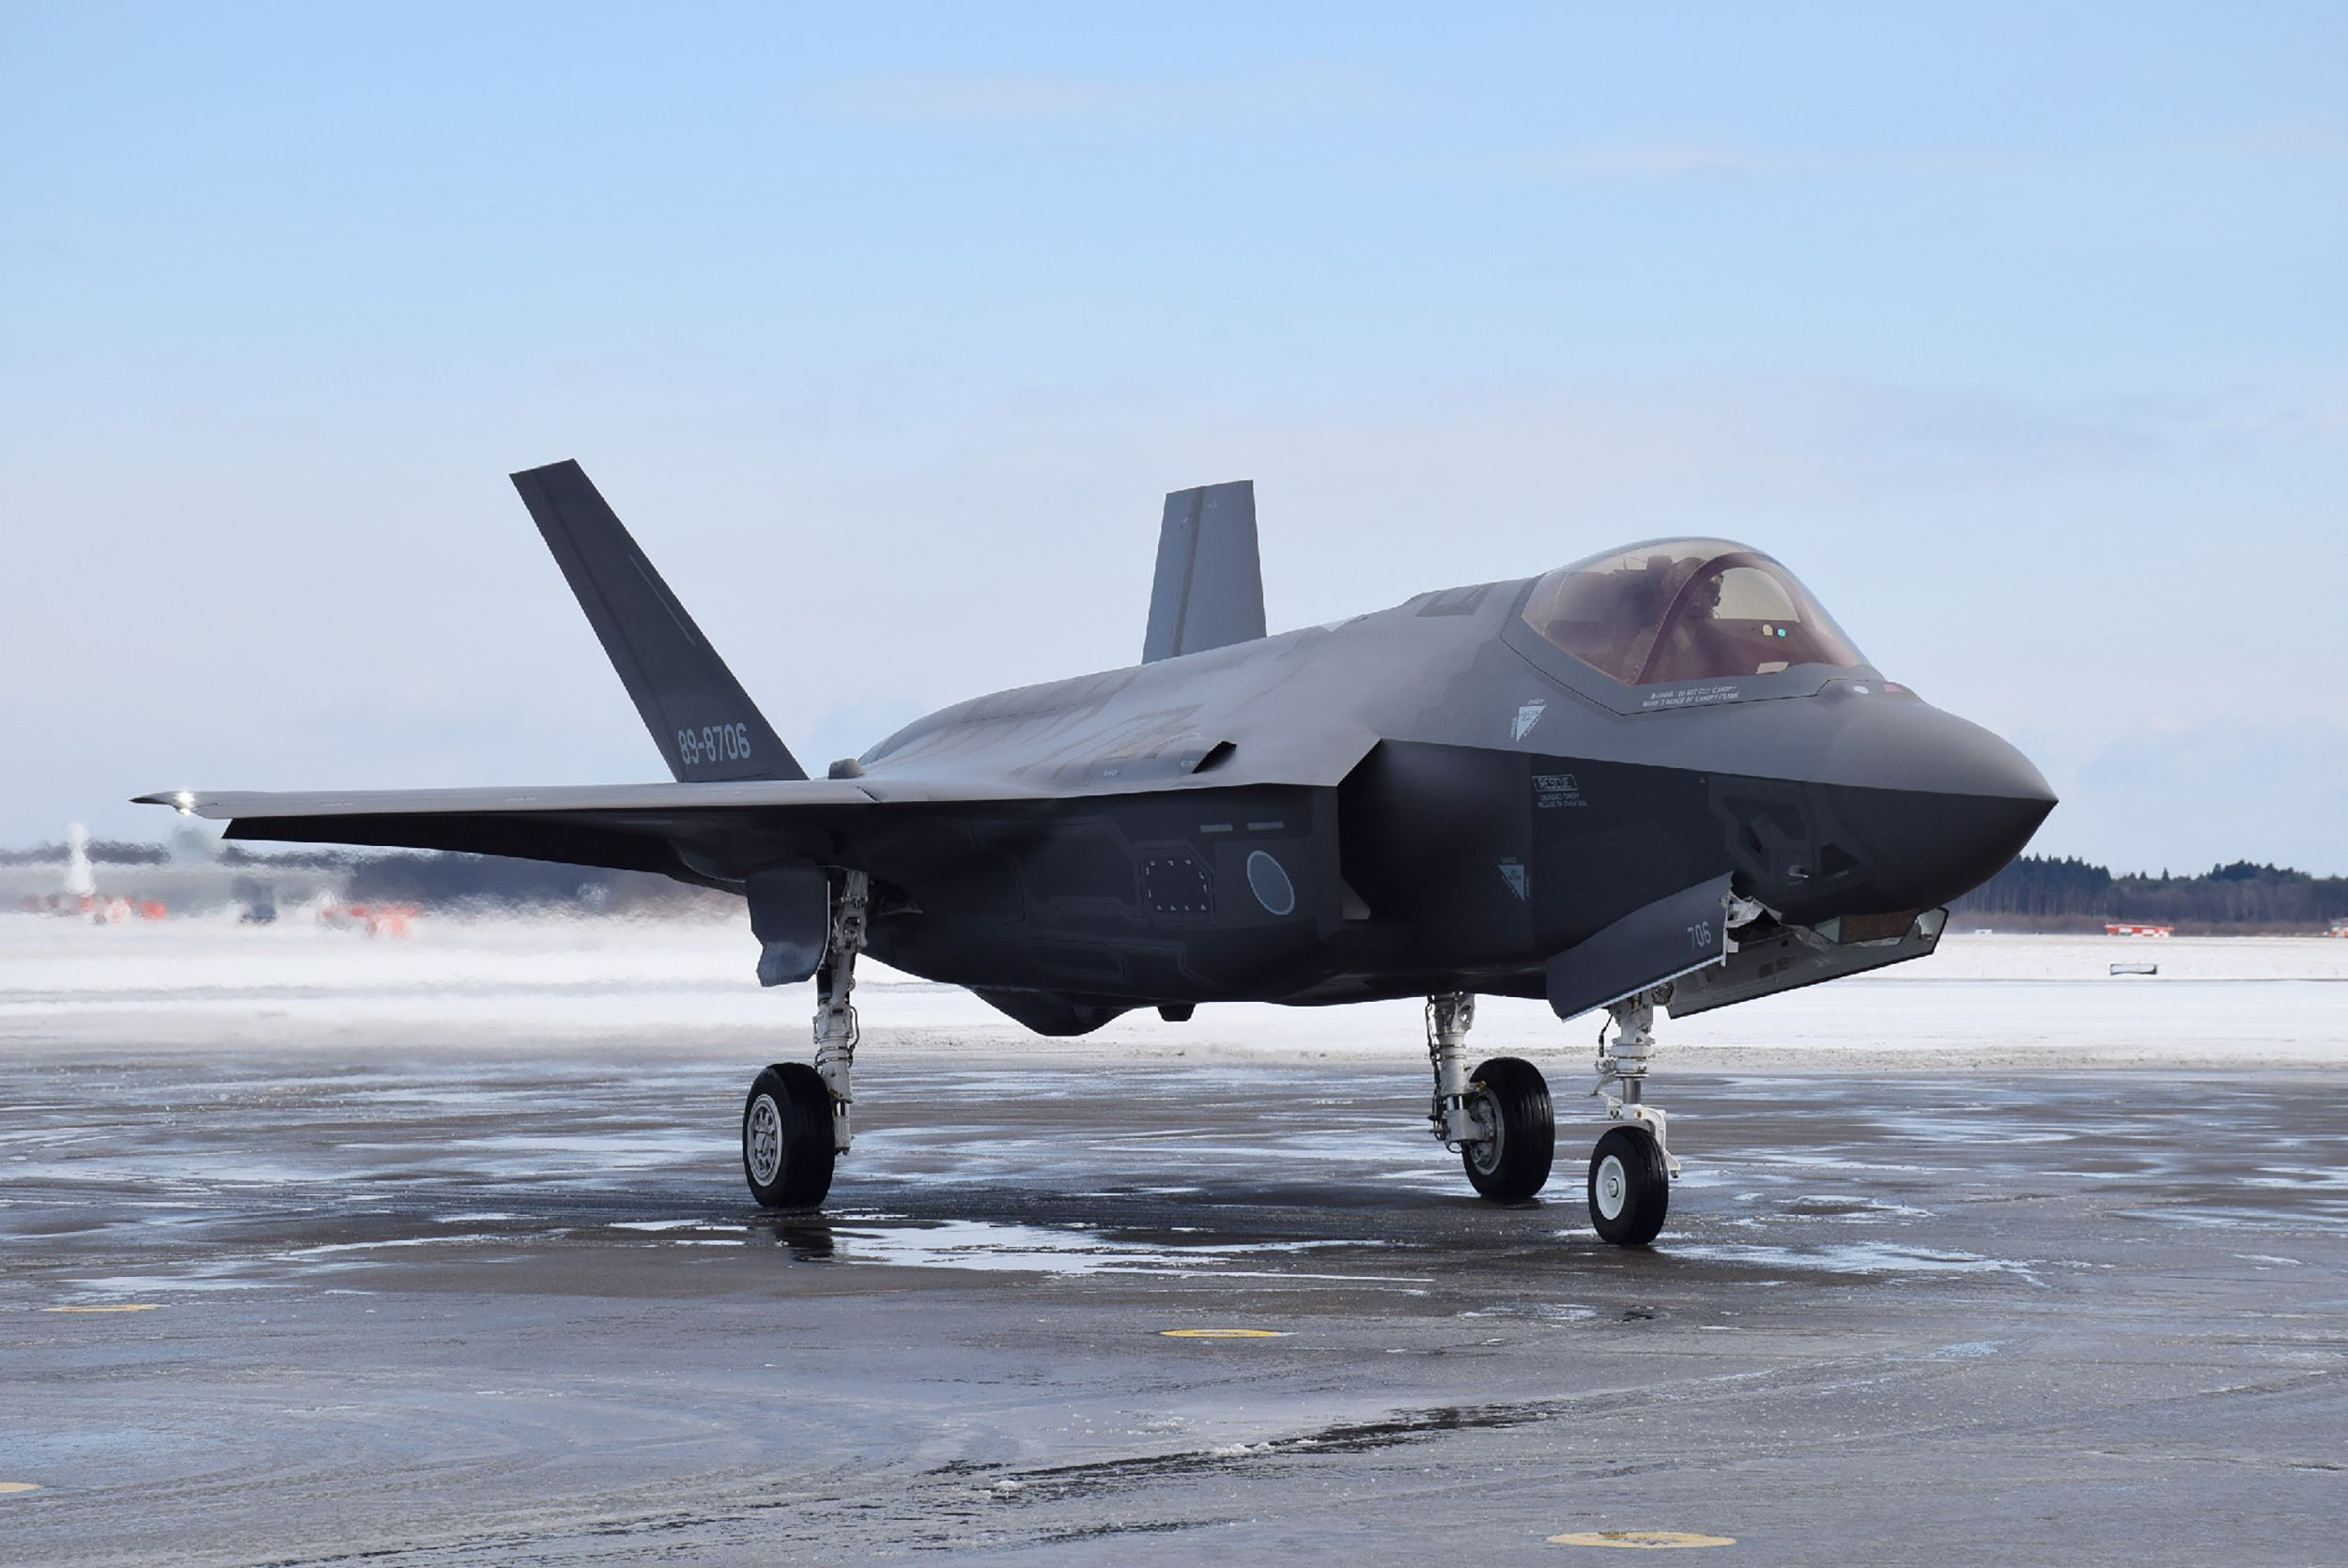 U.S.: China Won't Find Japan's Lost F-35 Before We Do